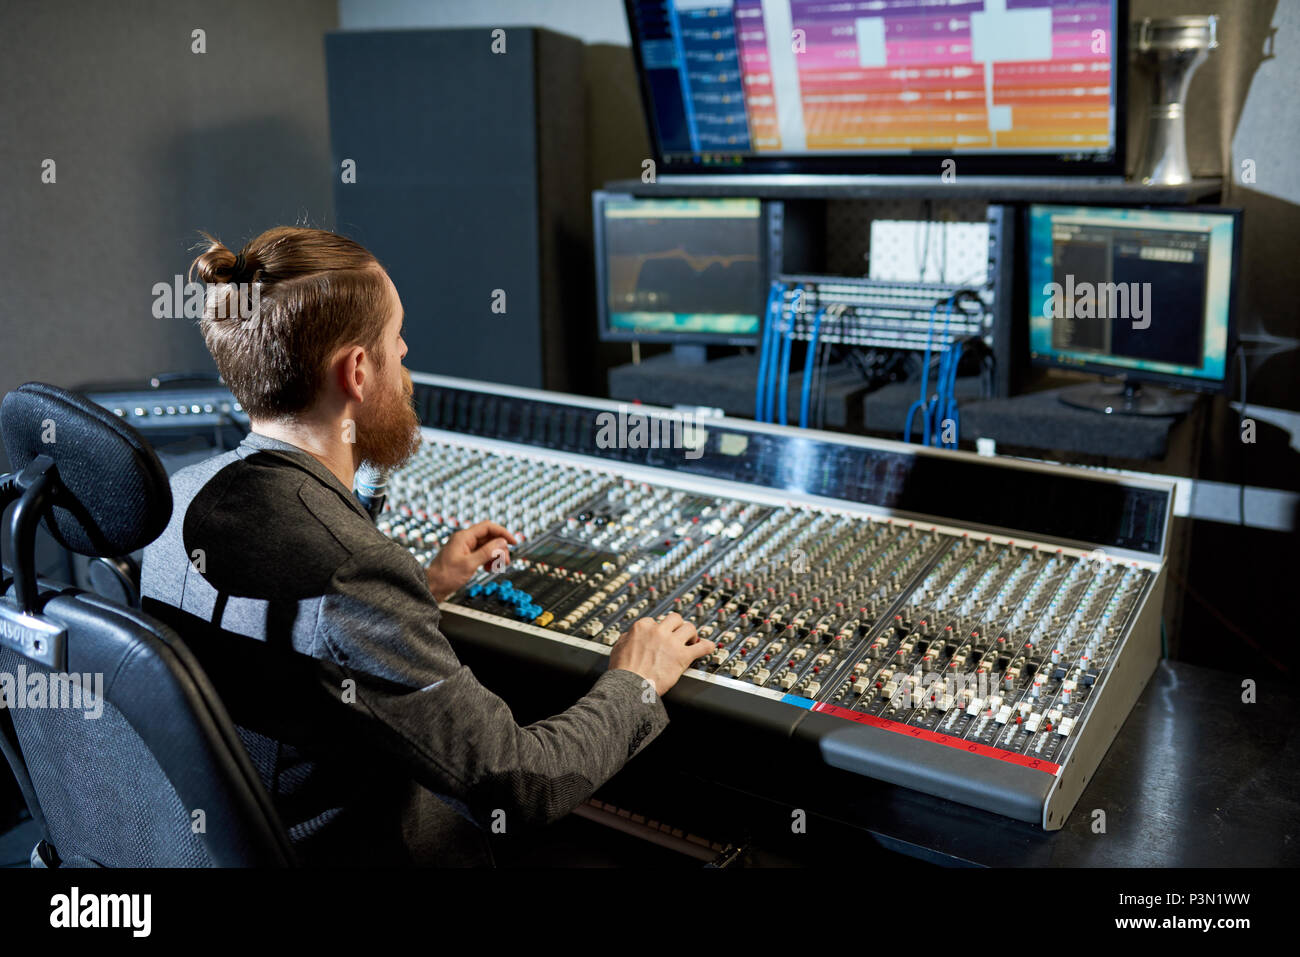 Man mixing and creating music - Stock Image